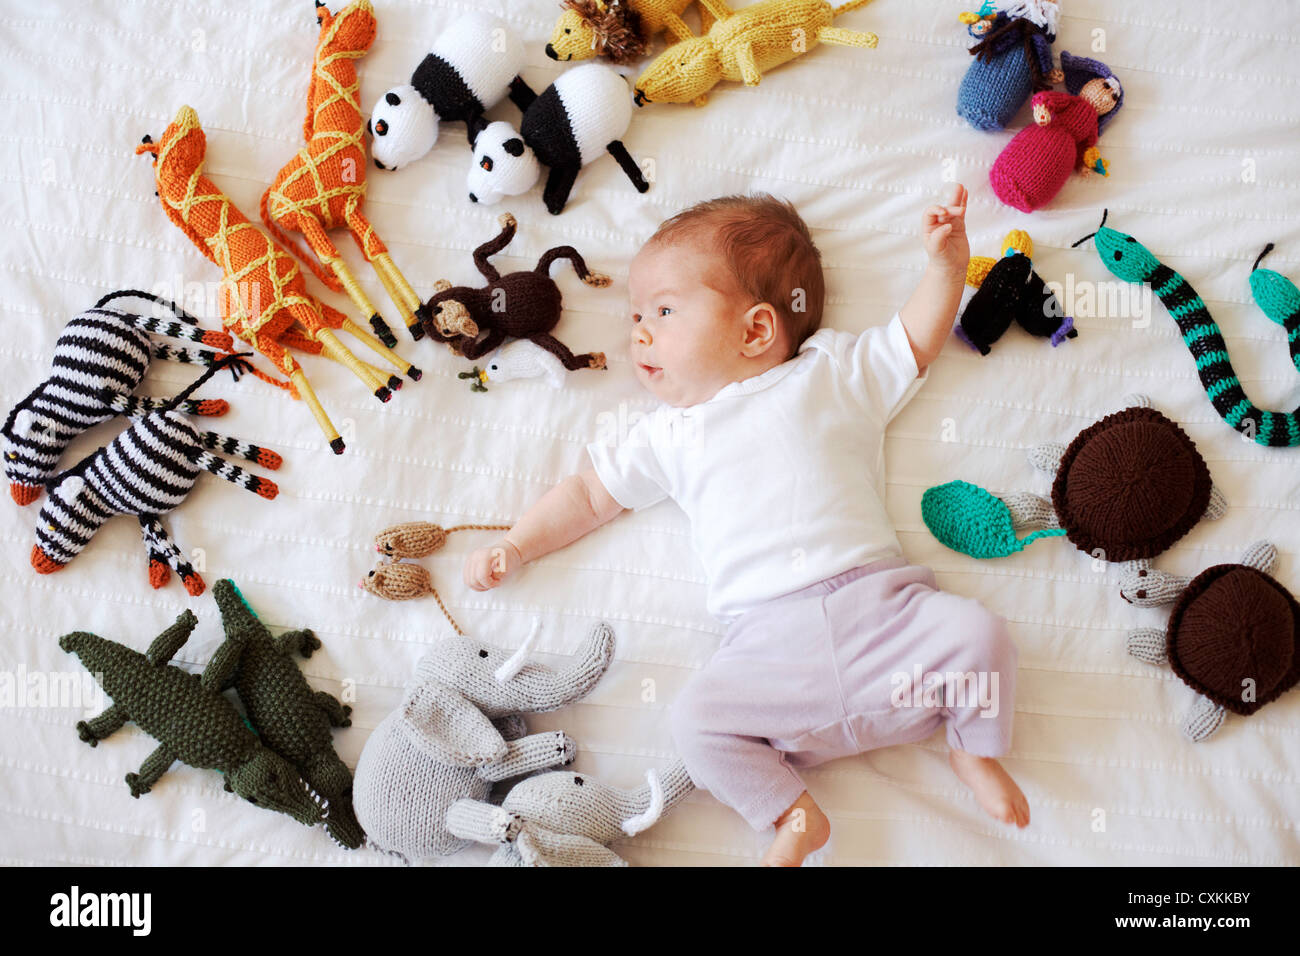 Baby surrounded by stuffed toys - Stock Image